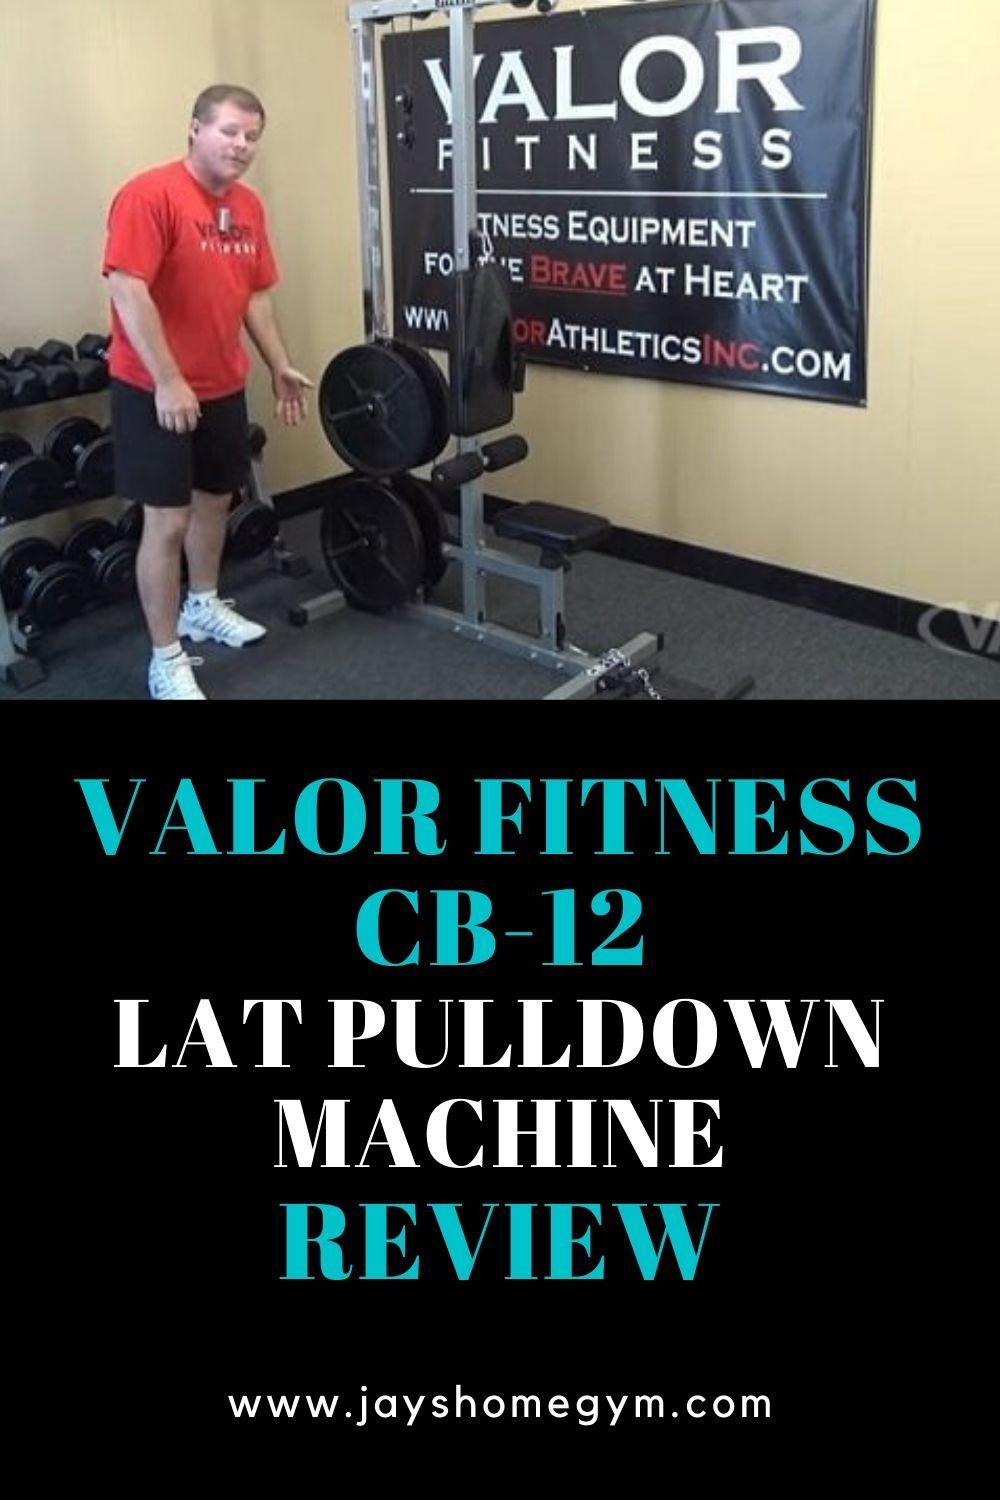 Valor Fitness Cb 12 : valor, fitness, Lateral, Machine, Ideas, Equipment, Workout,, Pulldown, Machine,